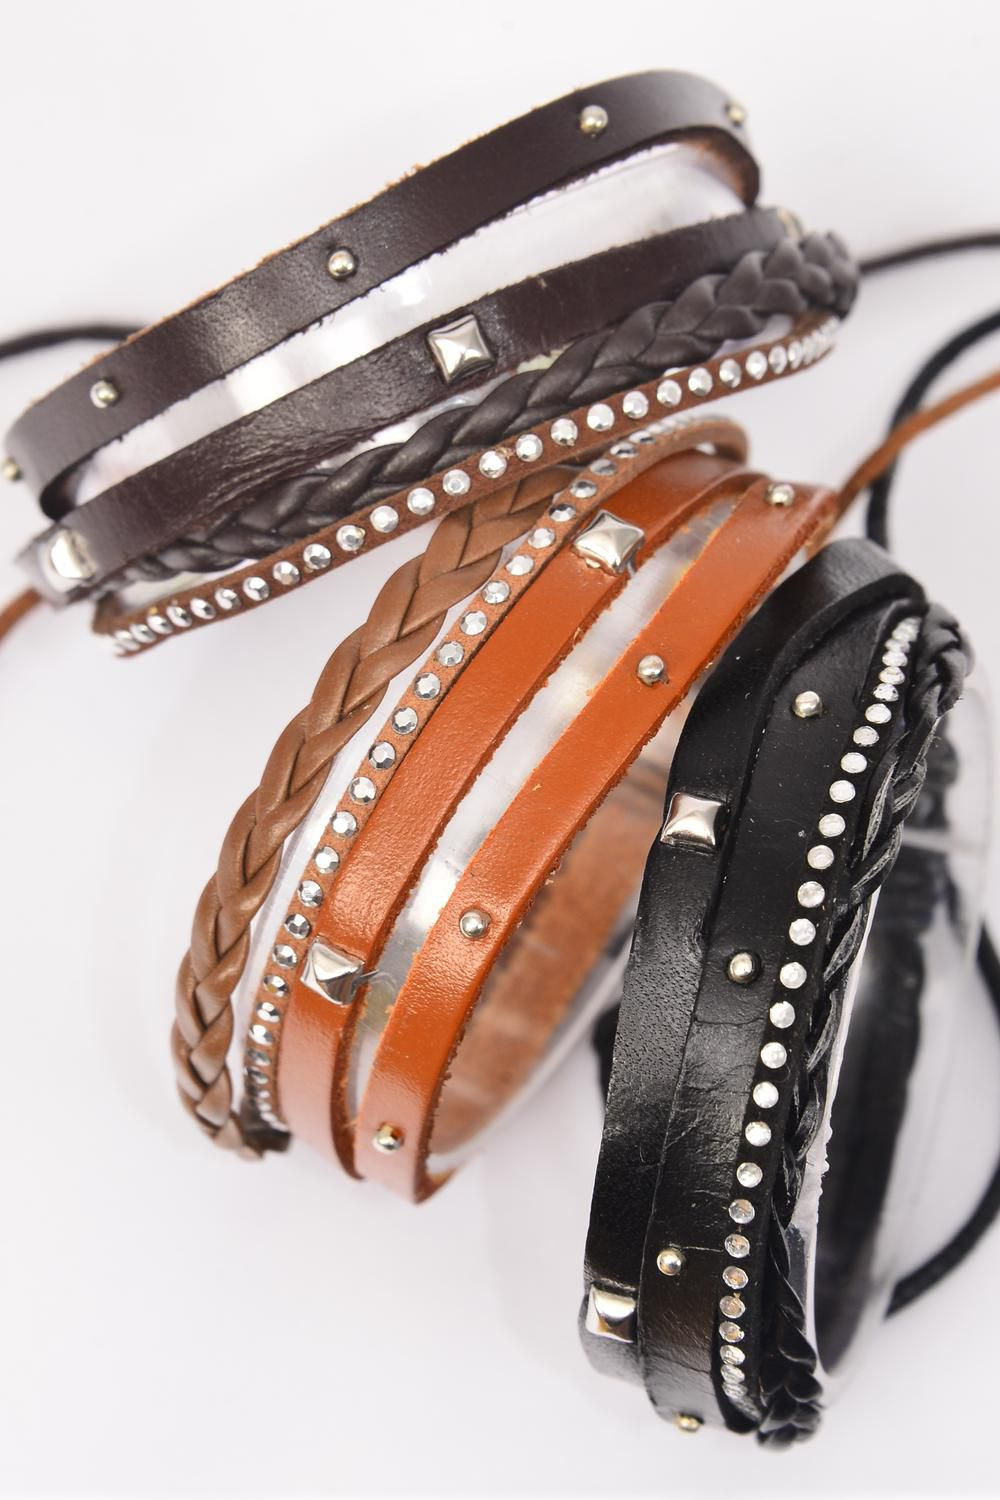 Bracelet Real Leather 4 Strand Studs Adjustable/DZ **Unisex** Adjustable,4 of each Color Mix,Individual Hang tag & OPP Bag & UPC Code